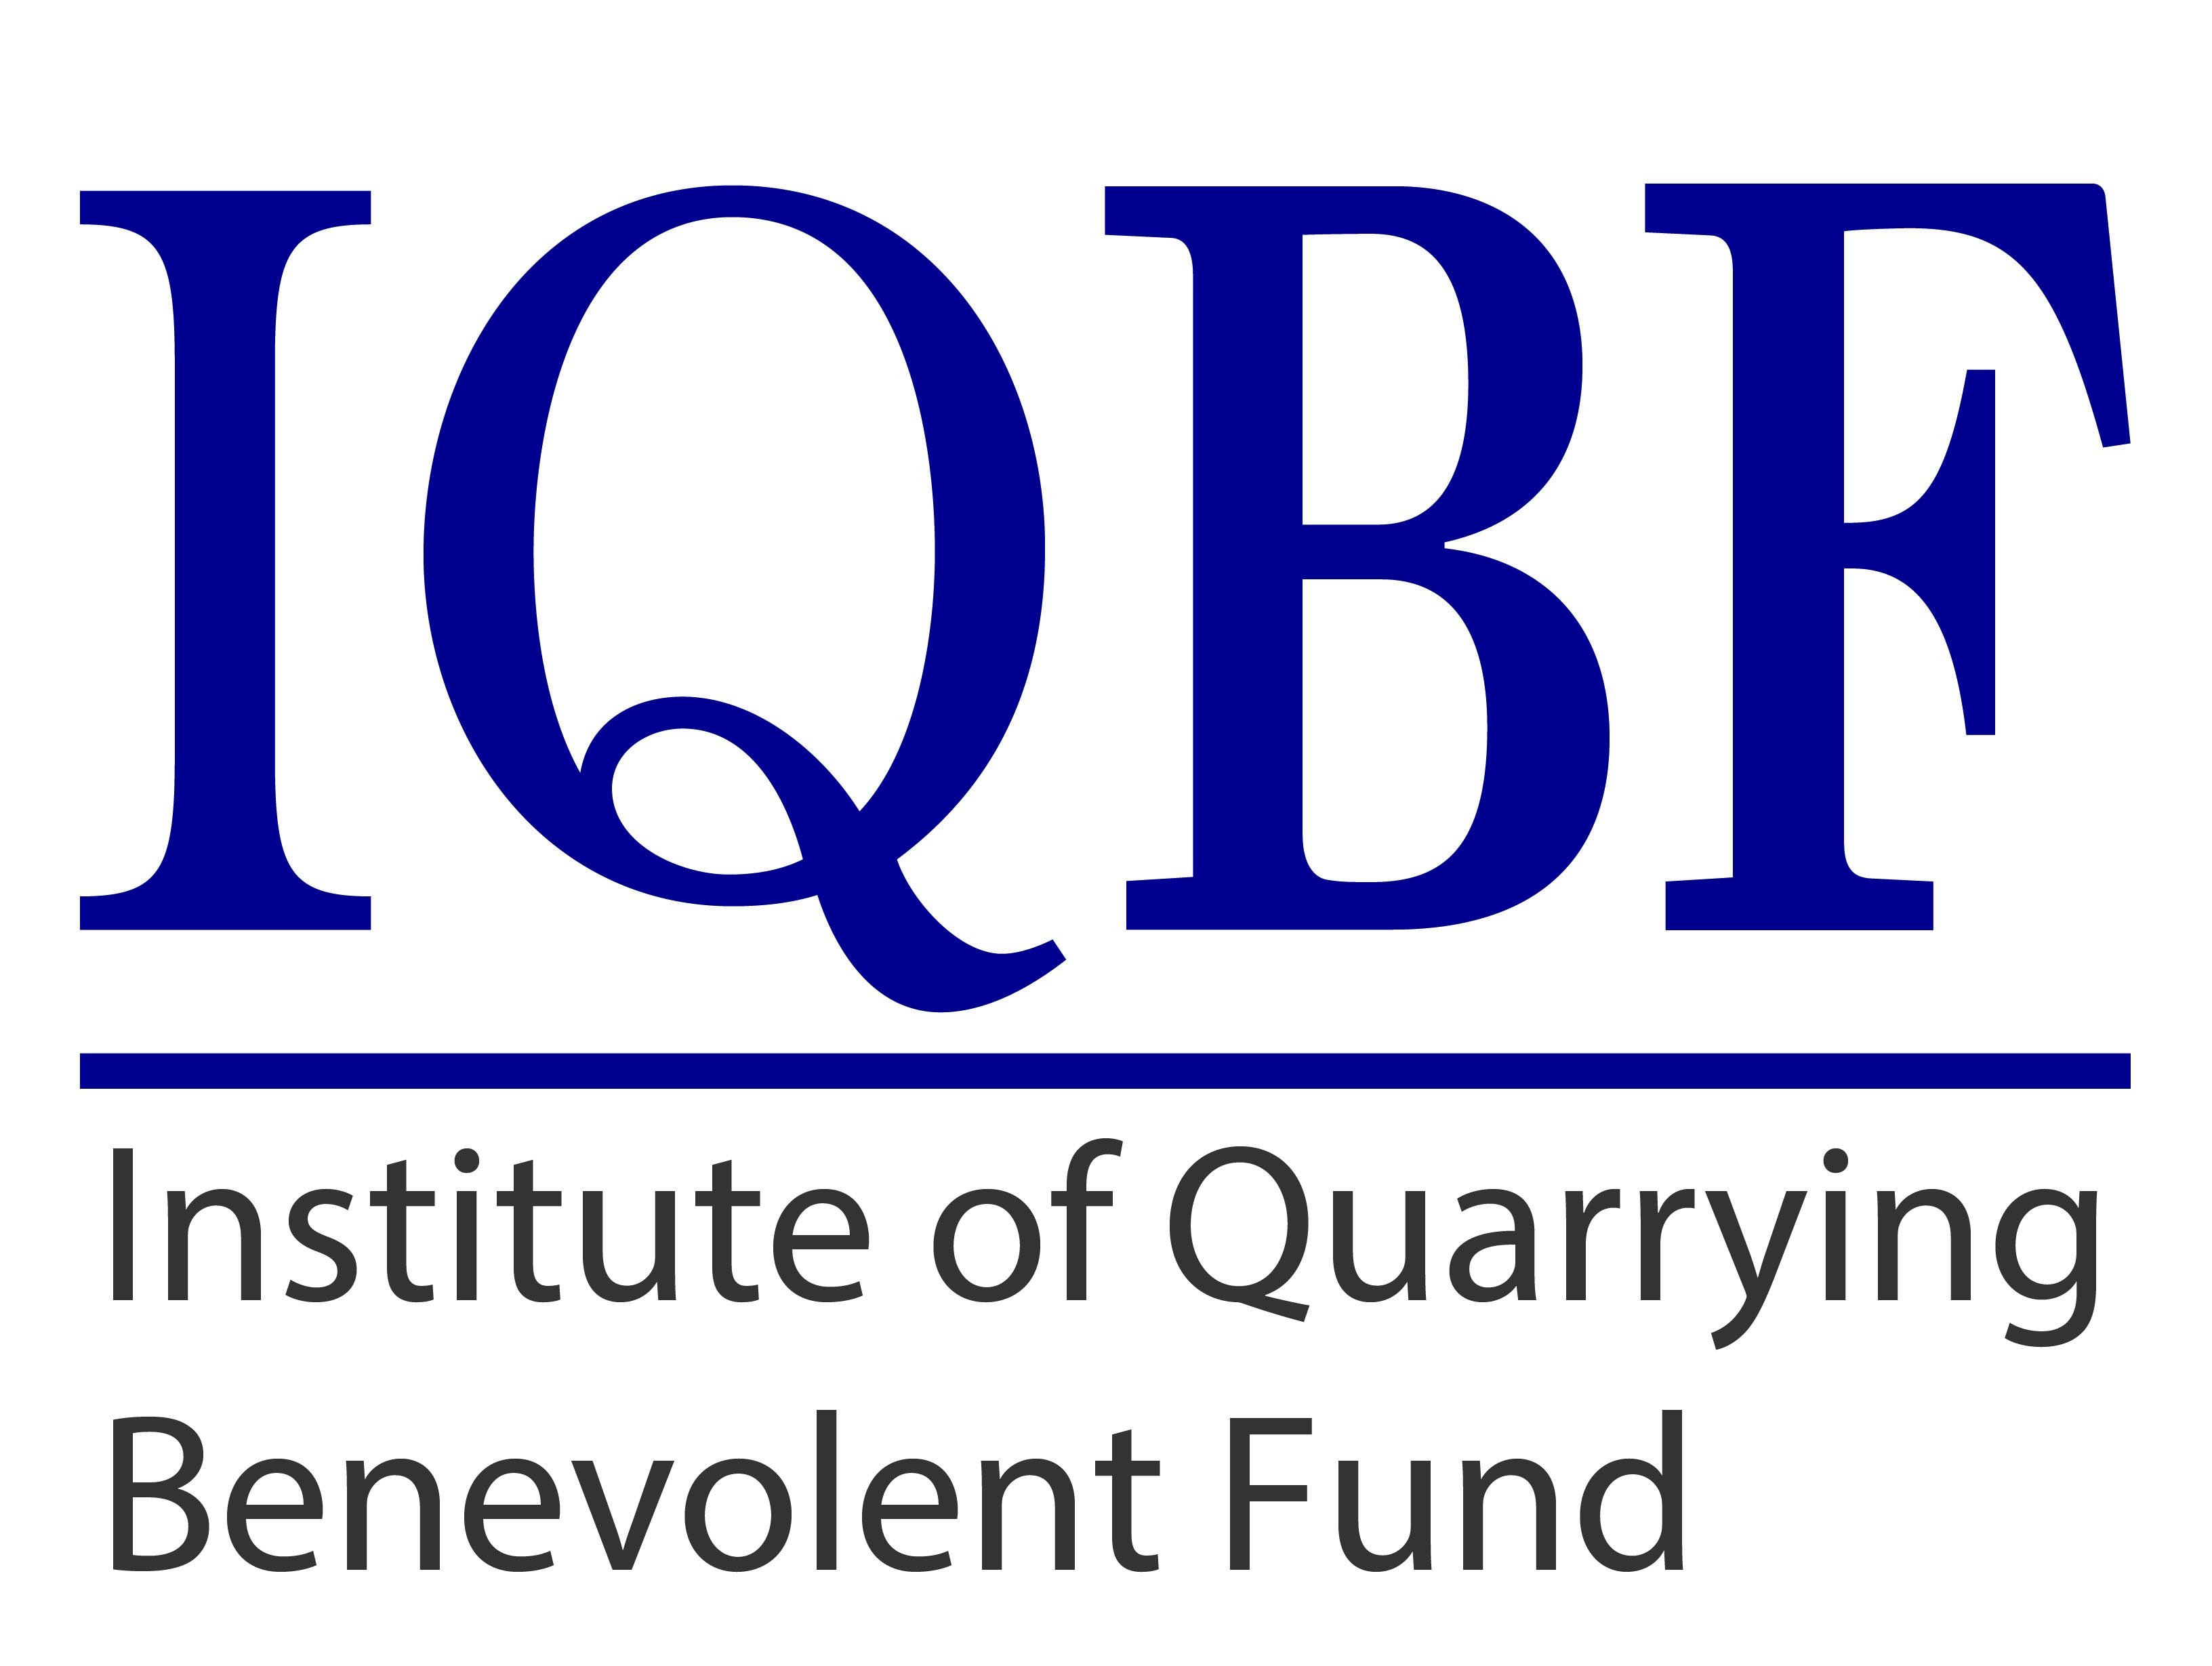 IQ Benevolent Fund